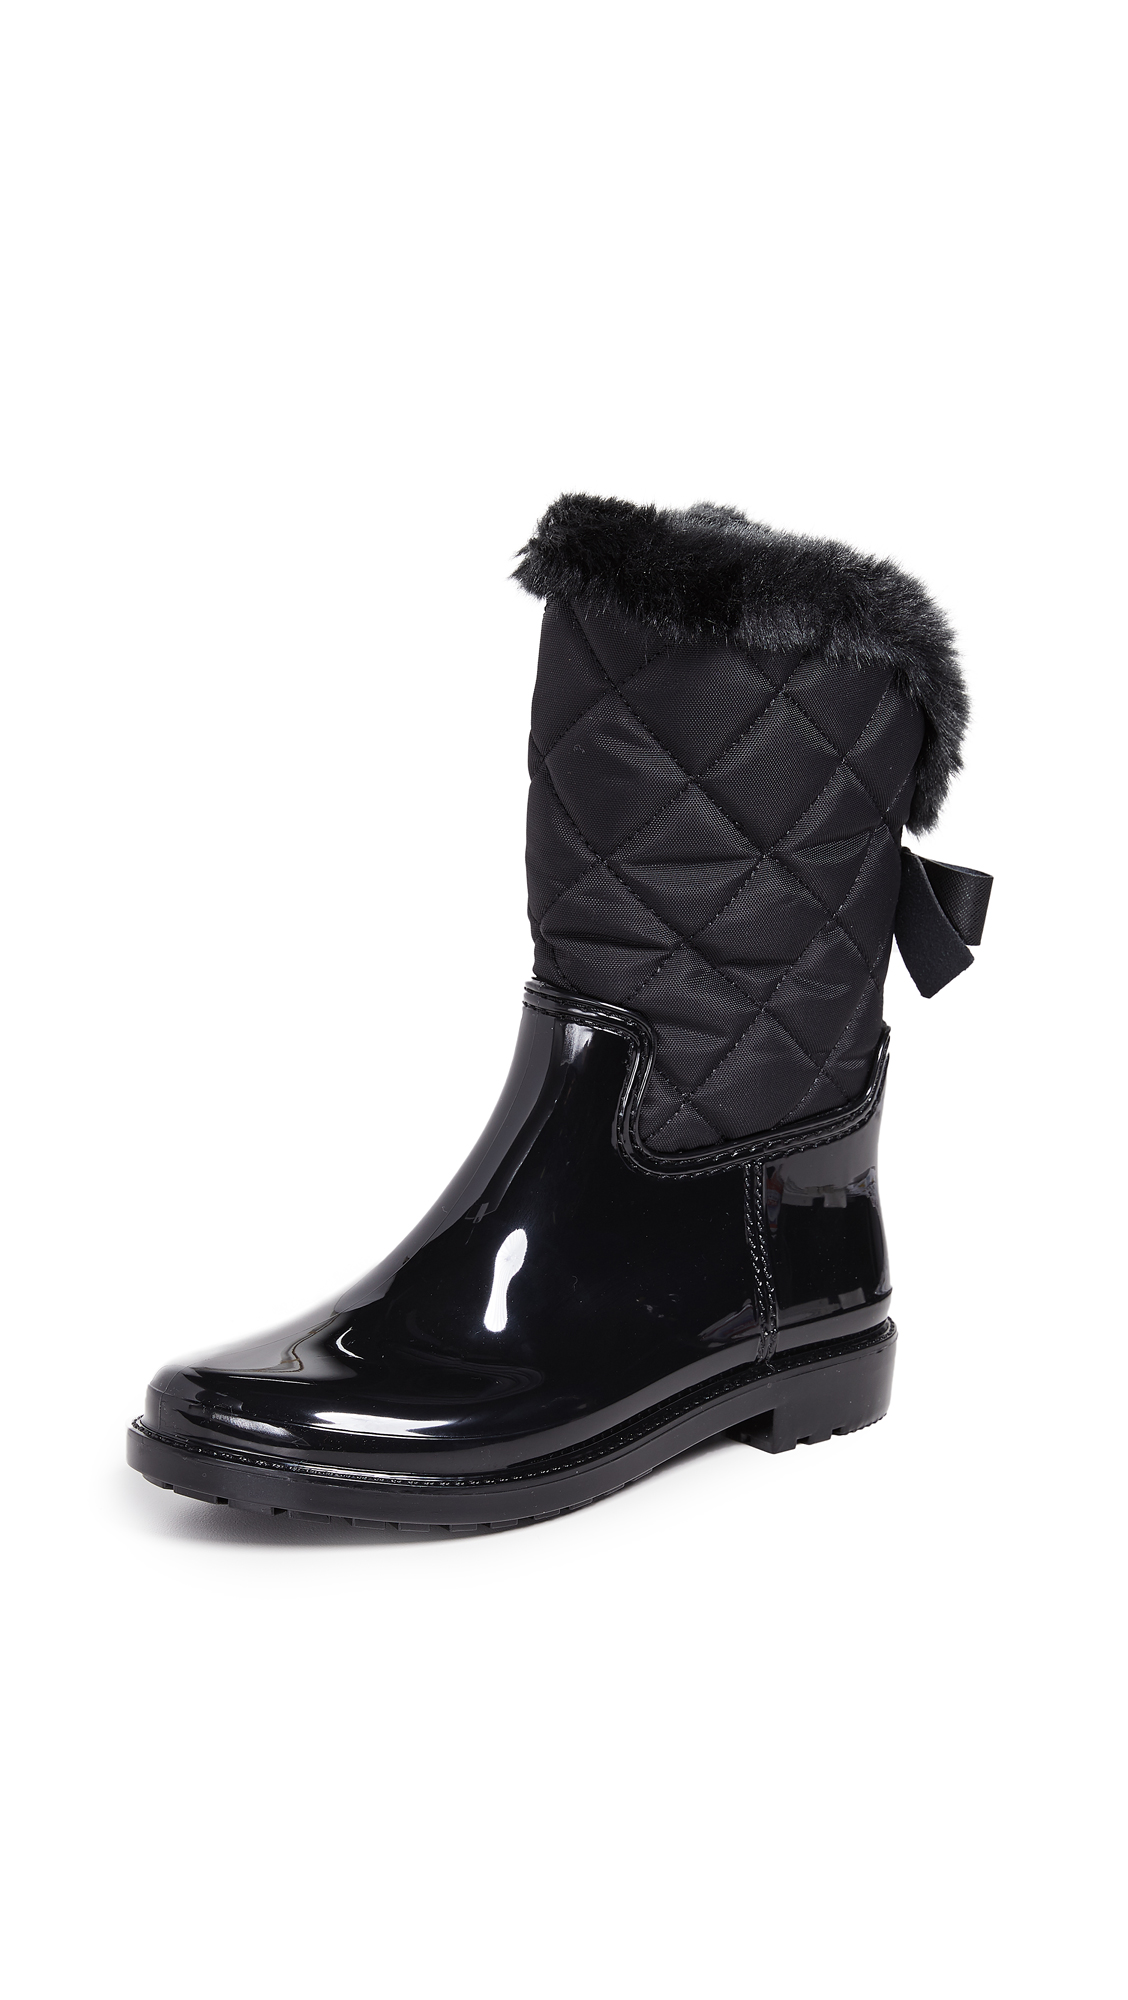 Kate Spade New York Reid Quilted Boots - Black